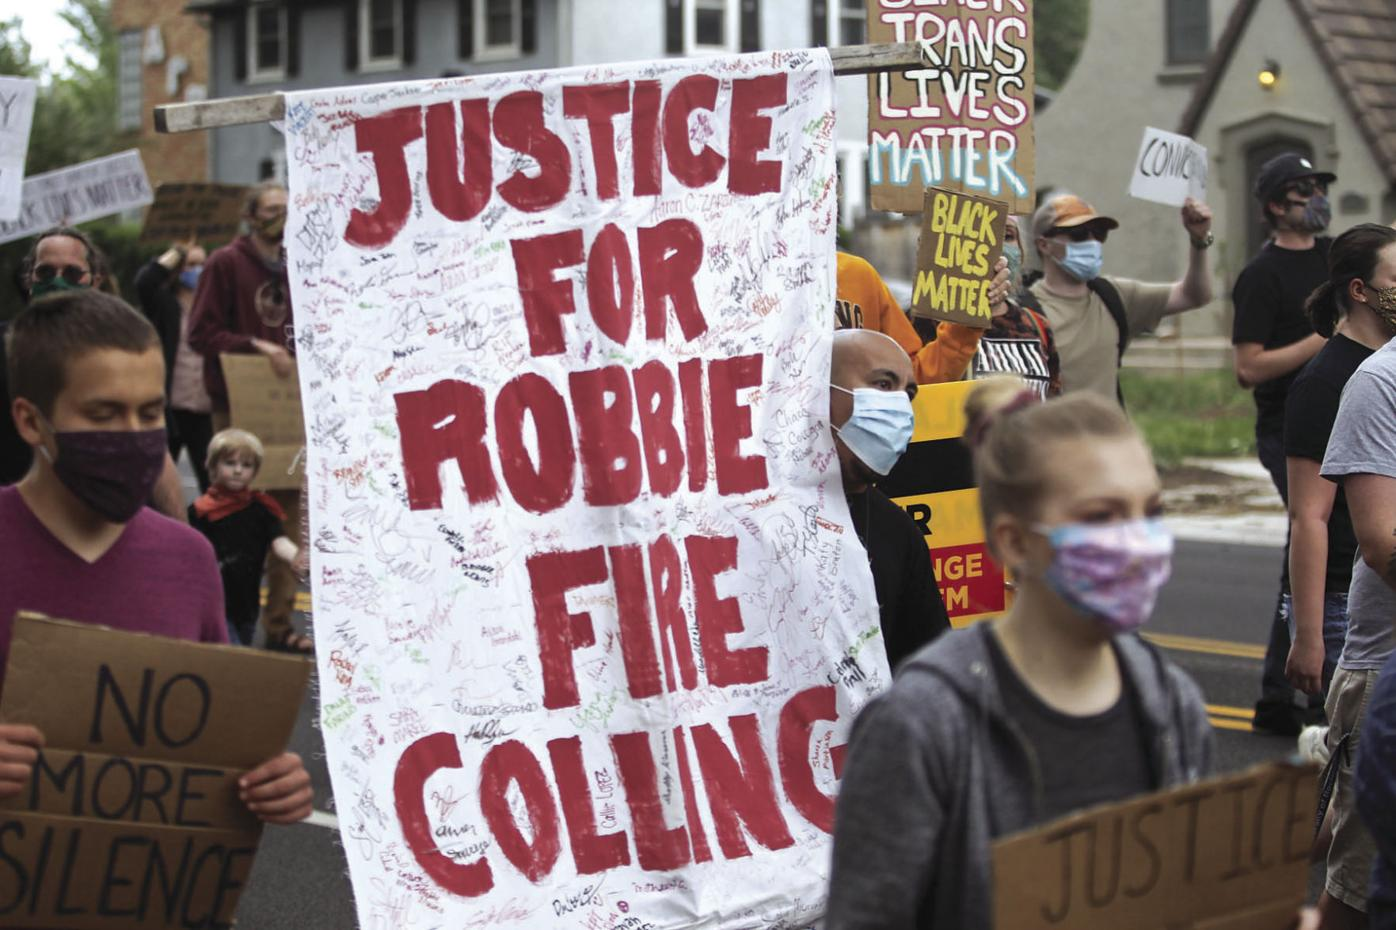 Protest-Colling No. 1